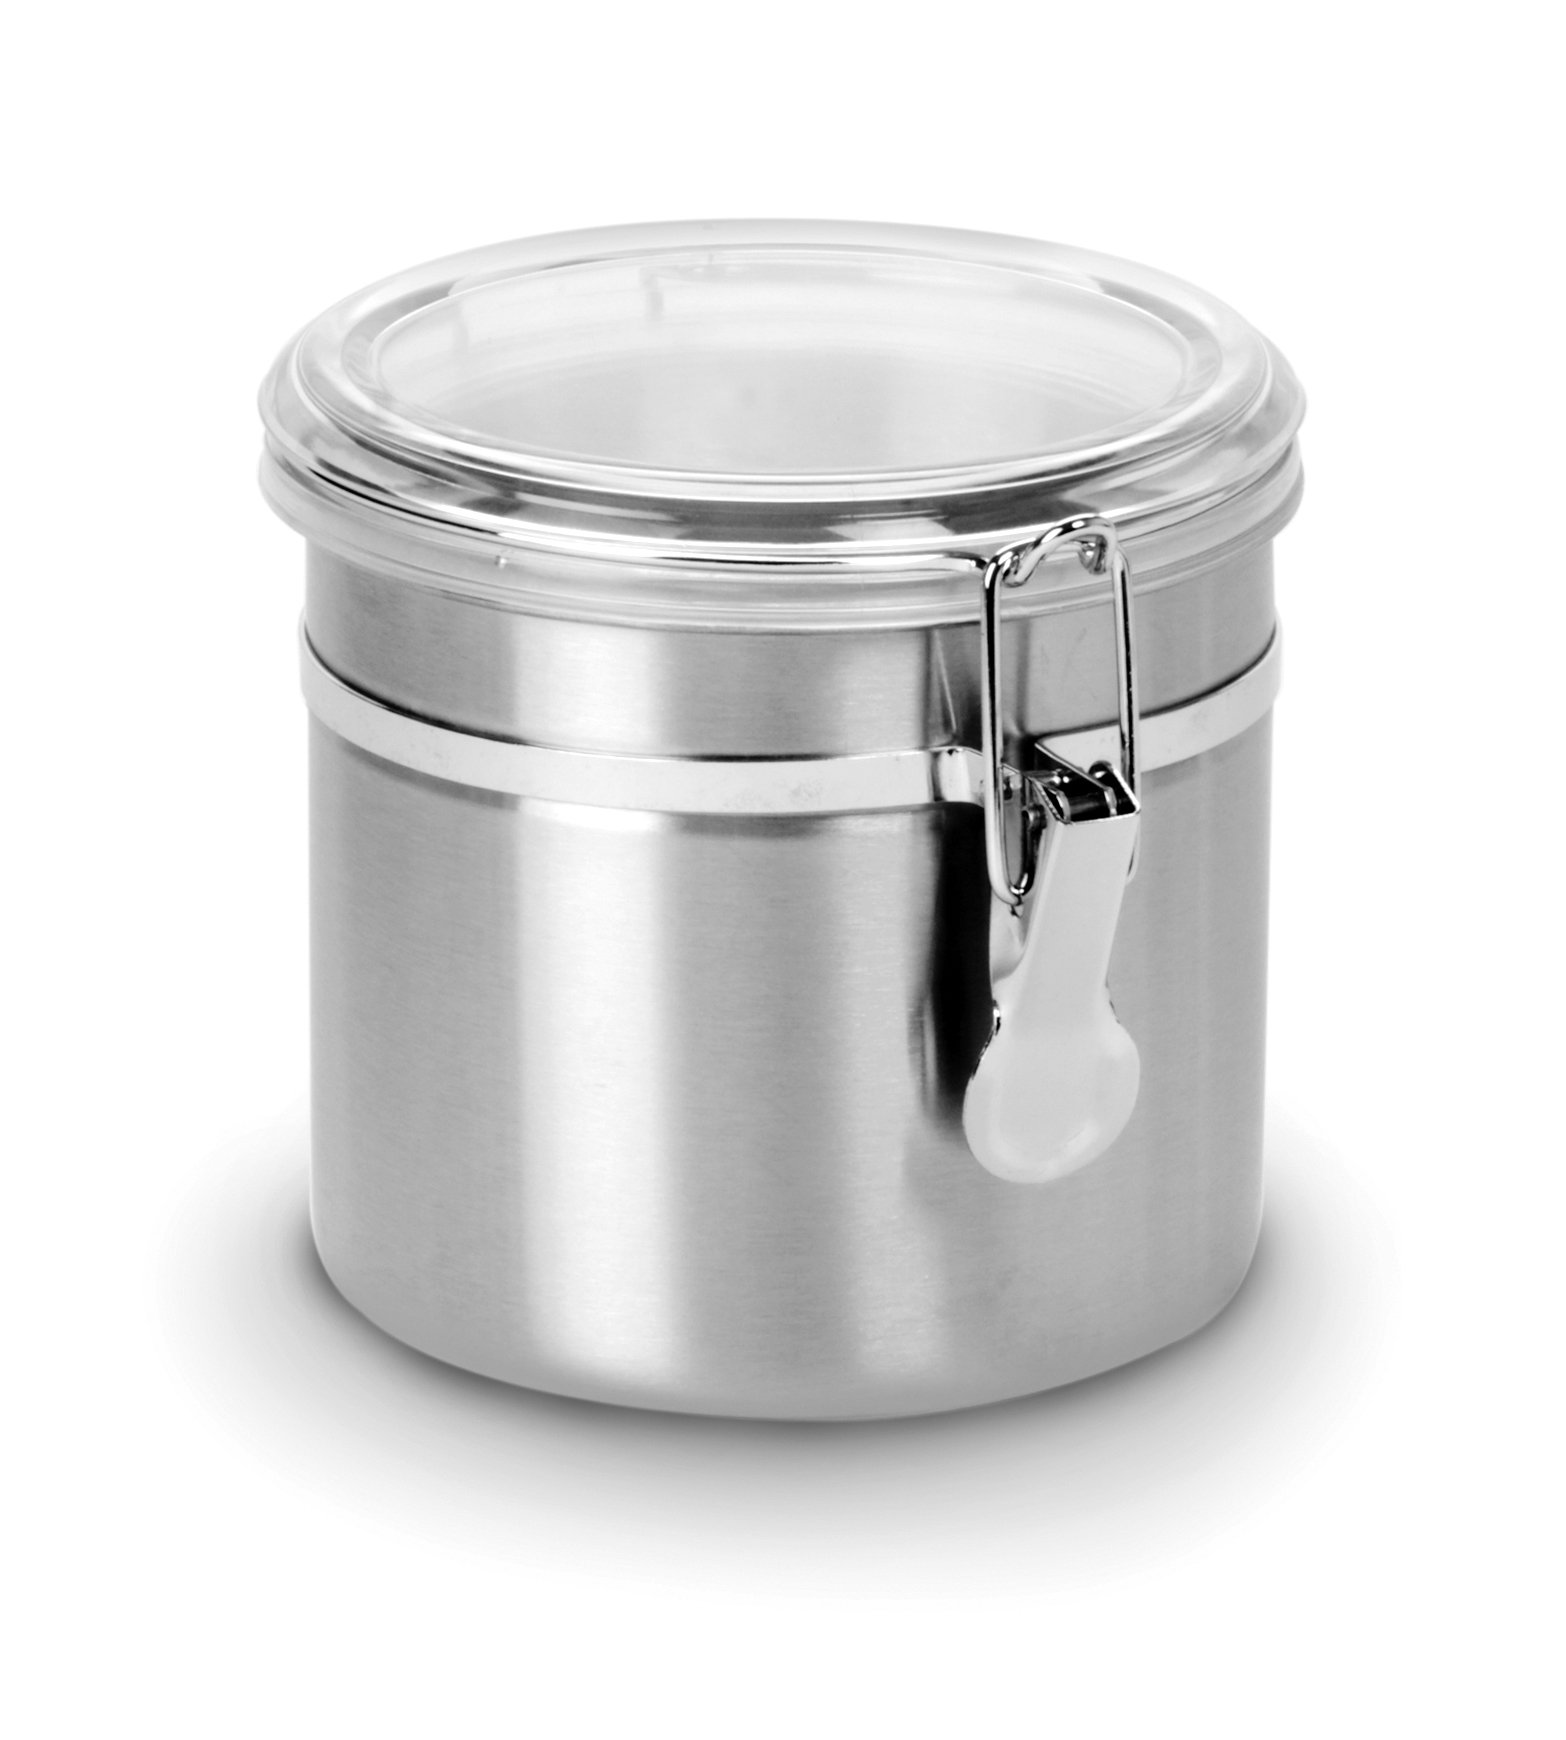 Anchor Hocking Round Stainless Steel Canister with Clear Acrylic Lid and Locking Clamp, 38 oz (Set of 4) by Anchor Hocking